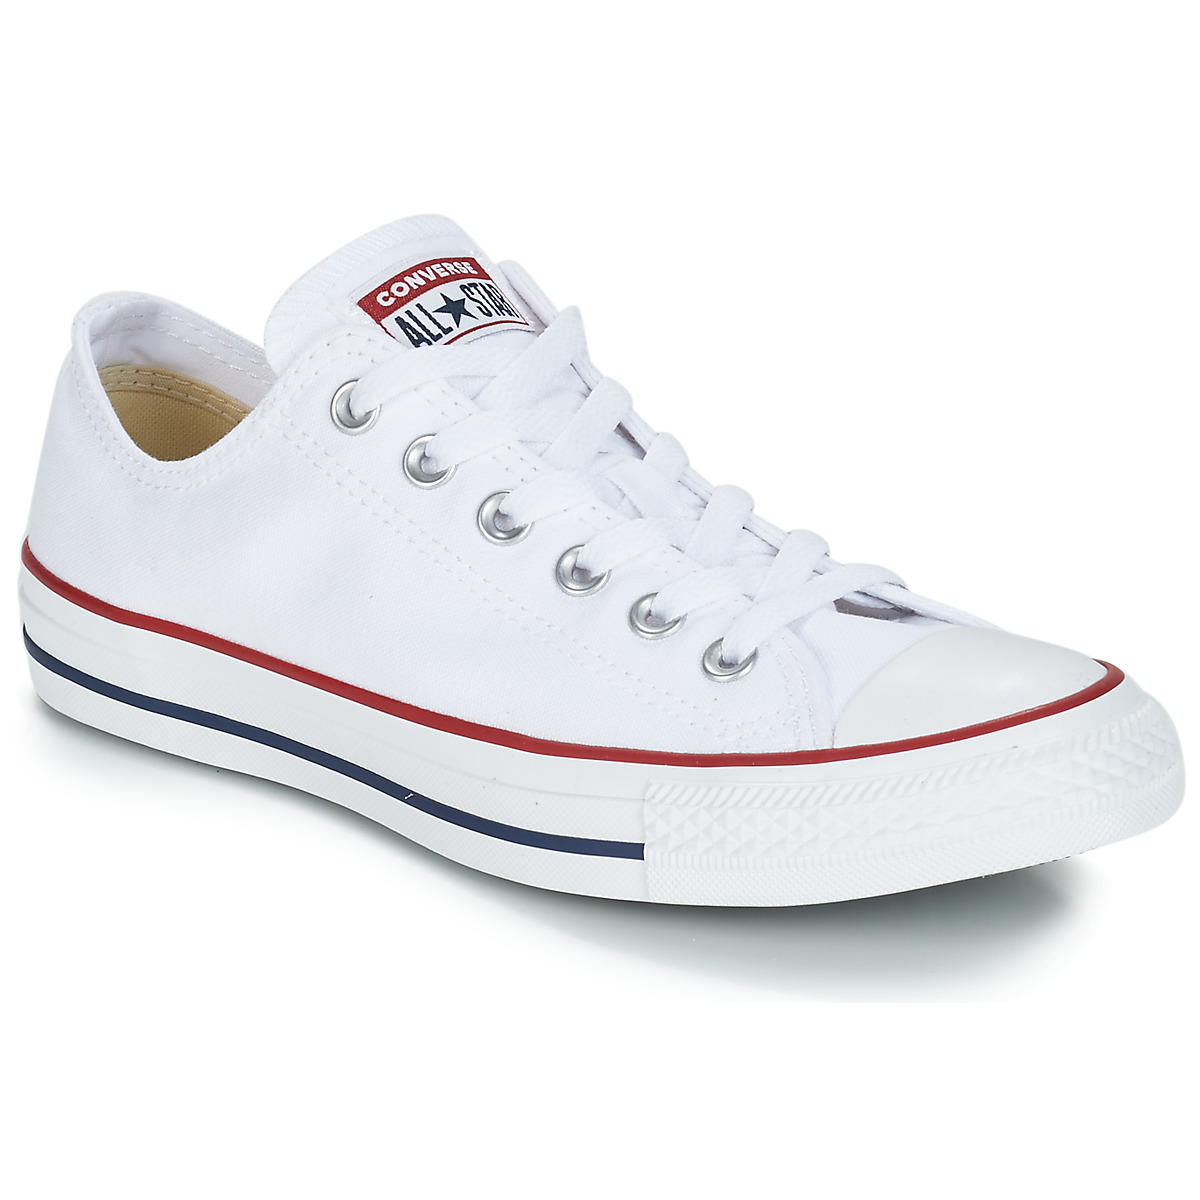 new style 2c58d a5c89 Chaussures Baskets basses Converse CHUCK TAYLOR ALL STAR CORE OX Blanc  Optical